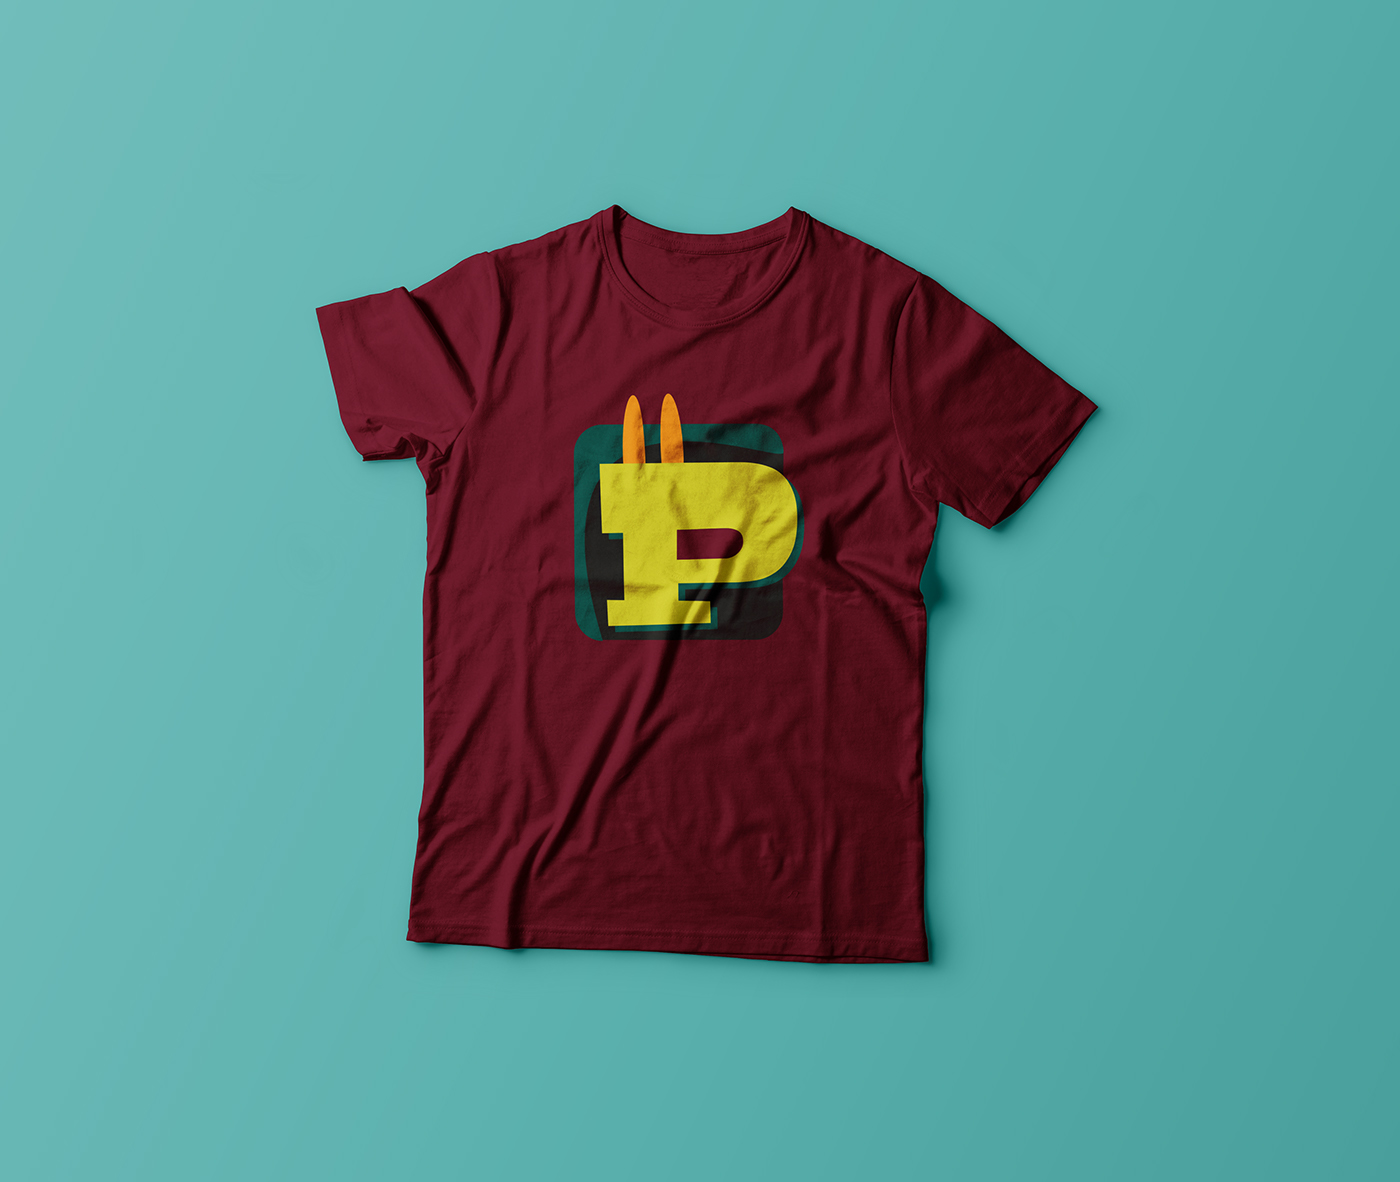 Pairi Daiza t-shirt with the icon